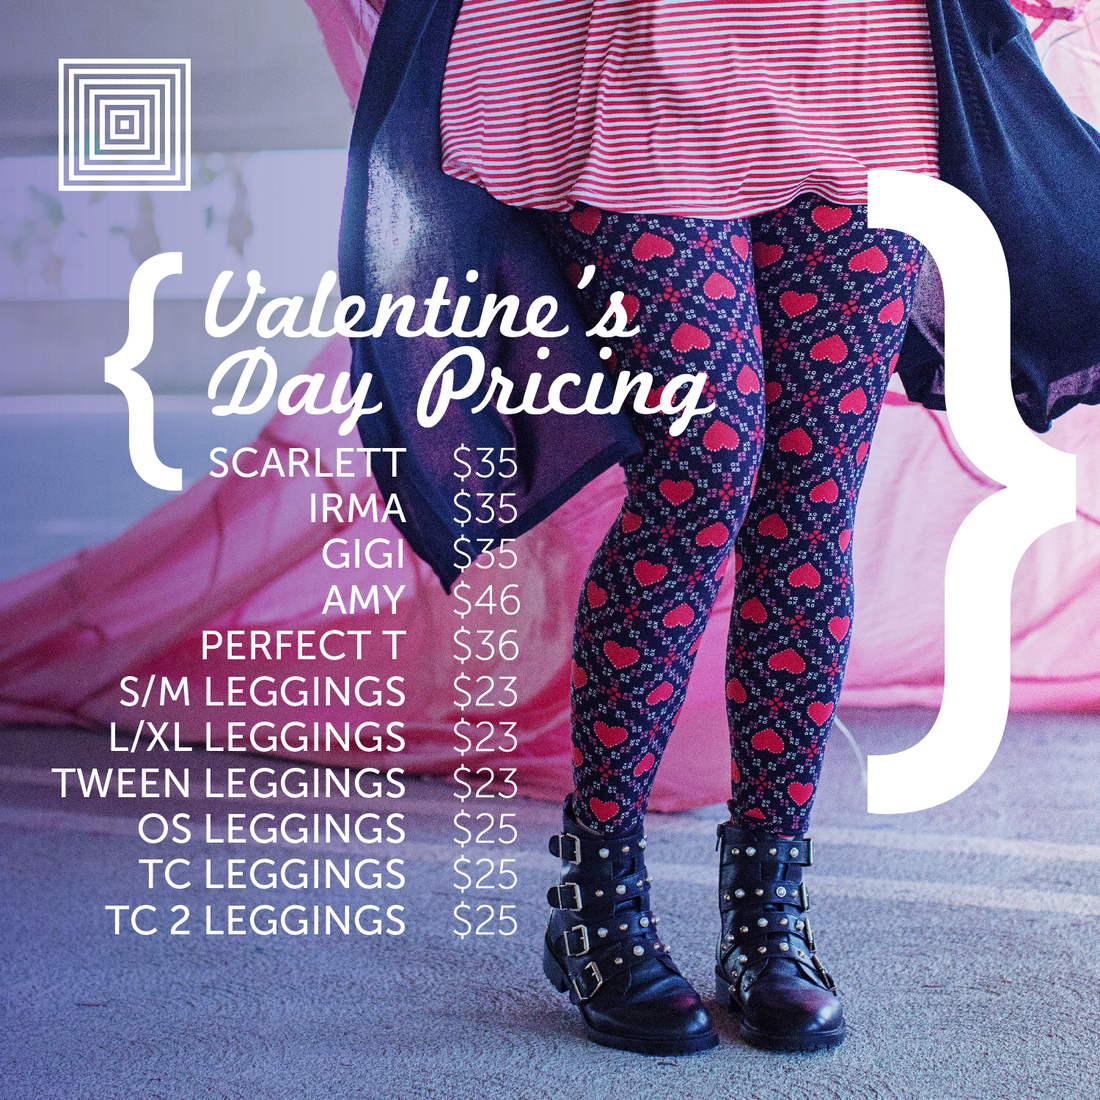 a30e6d52b5a7c1 LuLaRoe Valentine's Day Capsule Launch 2018 - Direct Sales and Home ...